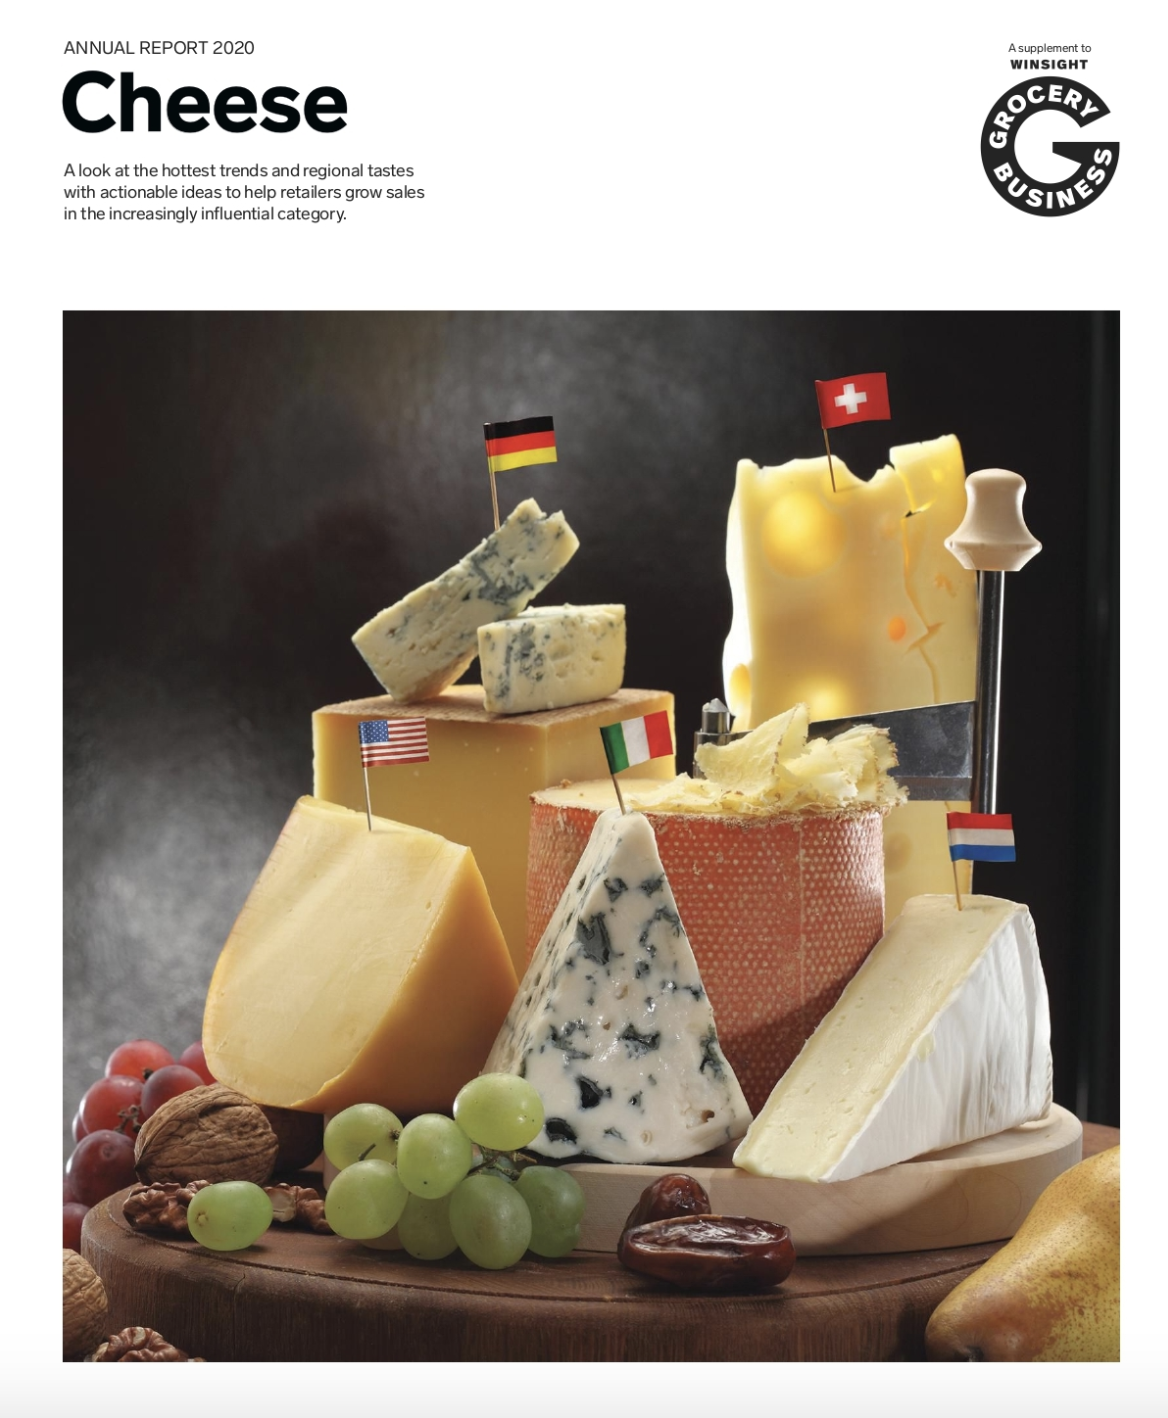 Winsight Grocery Business Magazine Annual Report 2020: Cheese Issue